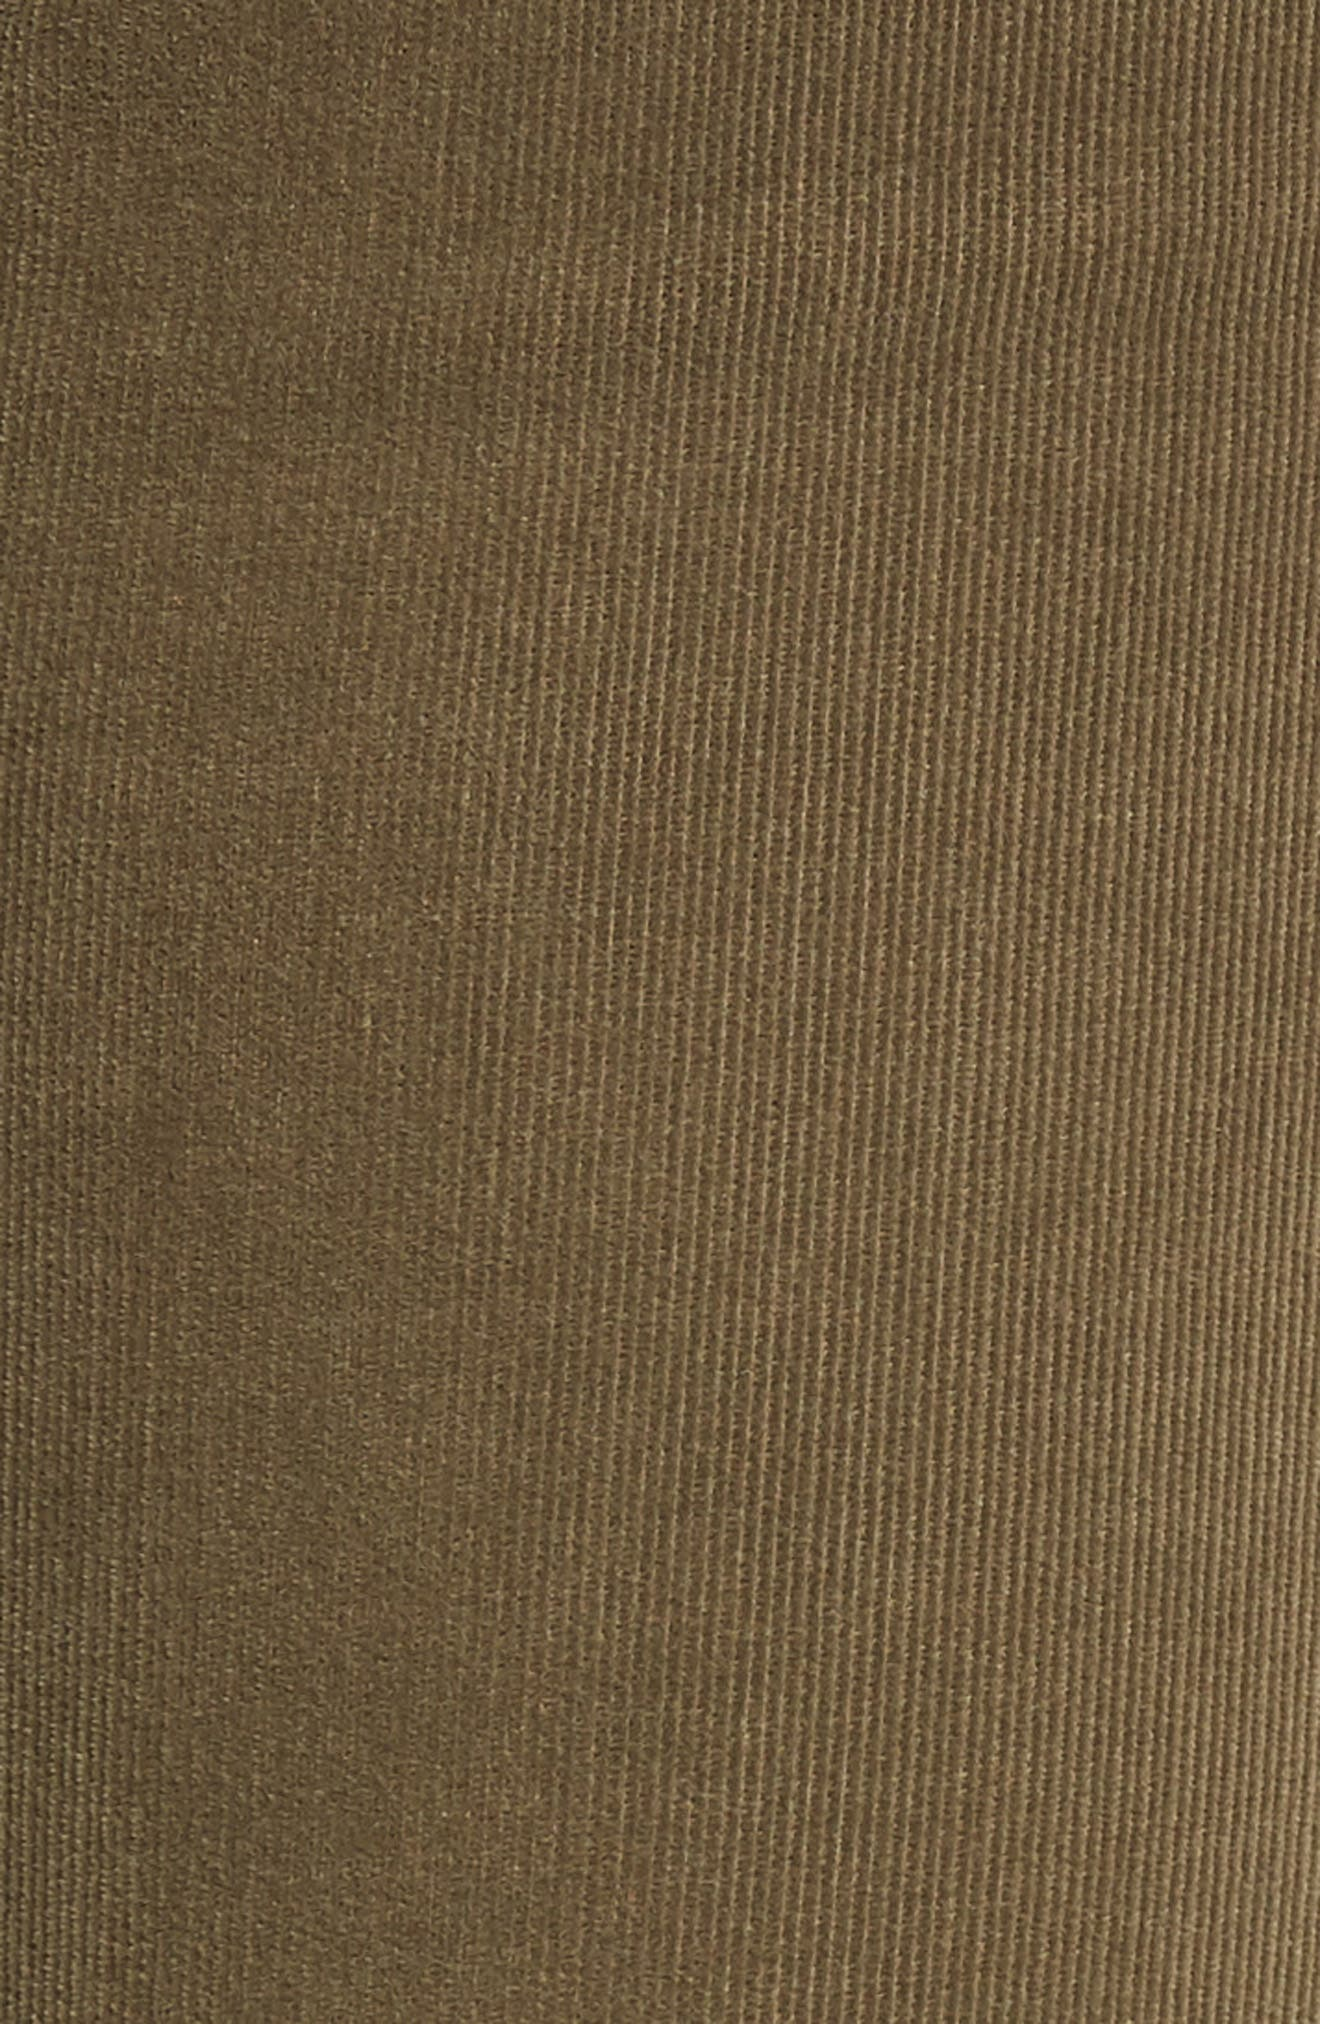 'Prima' Corduroy Skinny Pants,                             Alternate thumbnail 3, color,                             Dried Agave